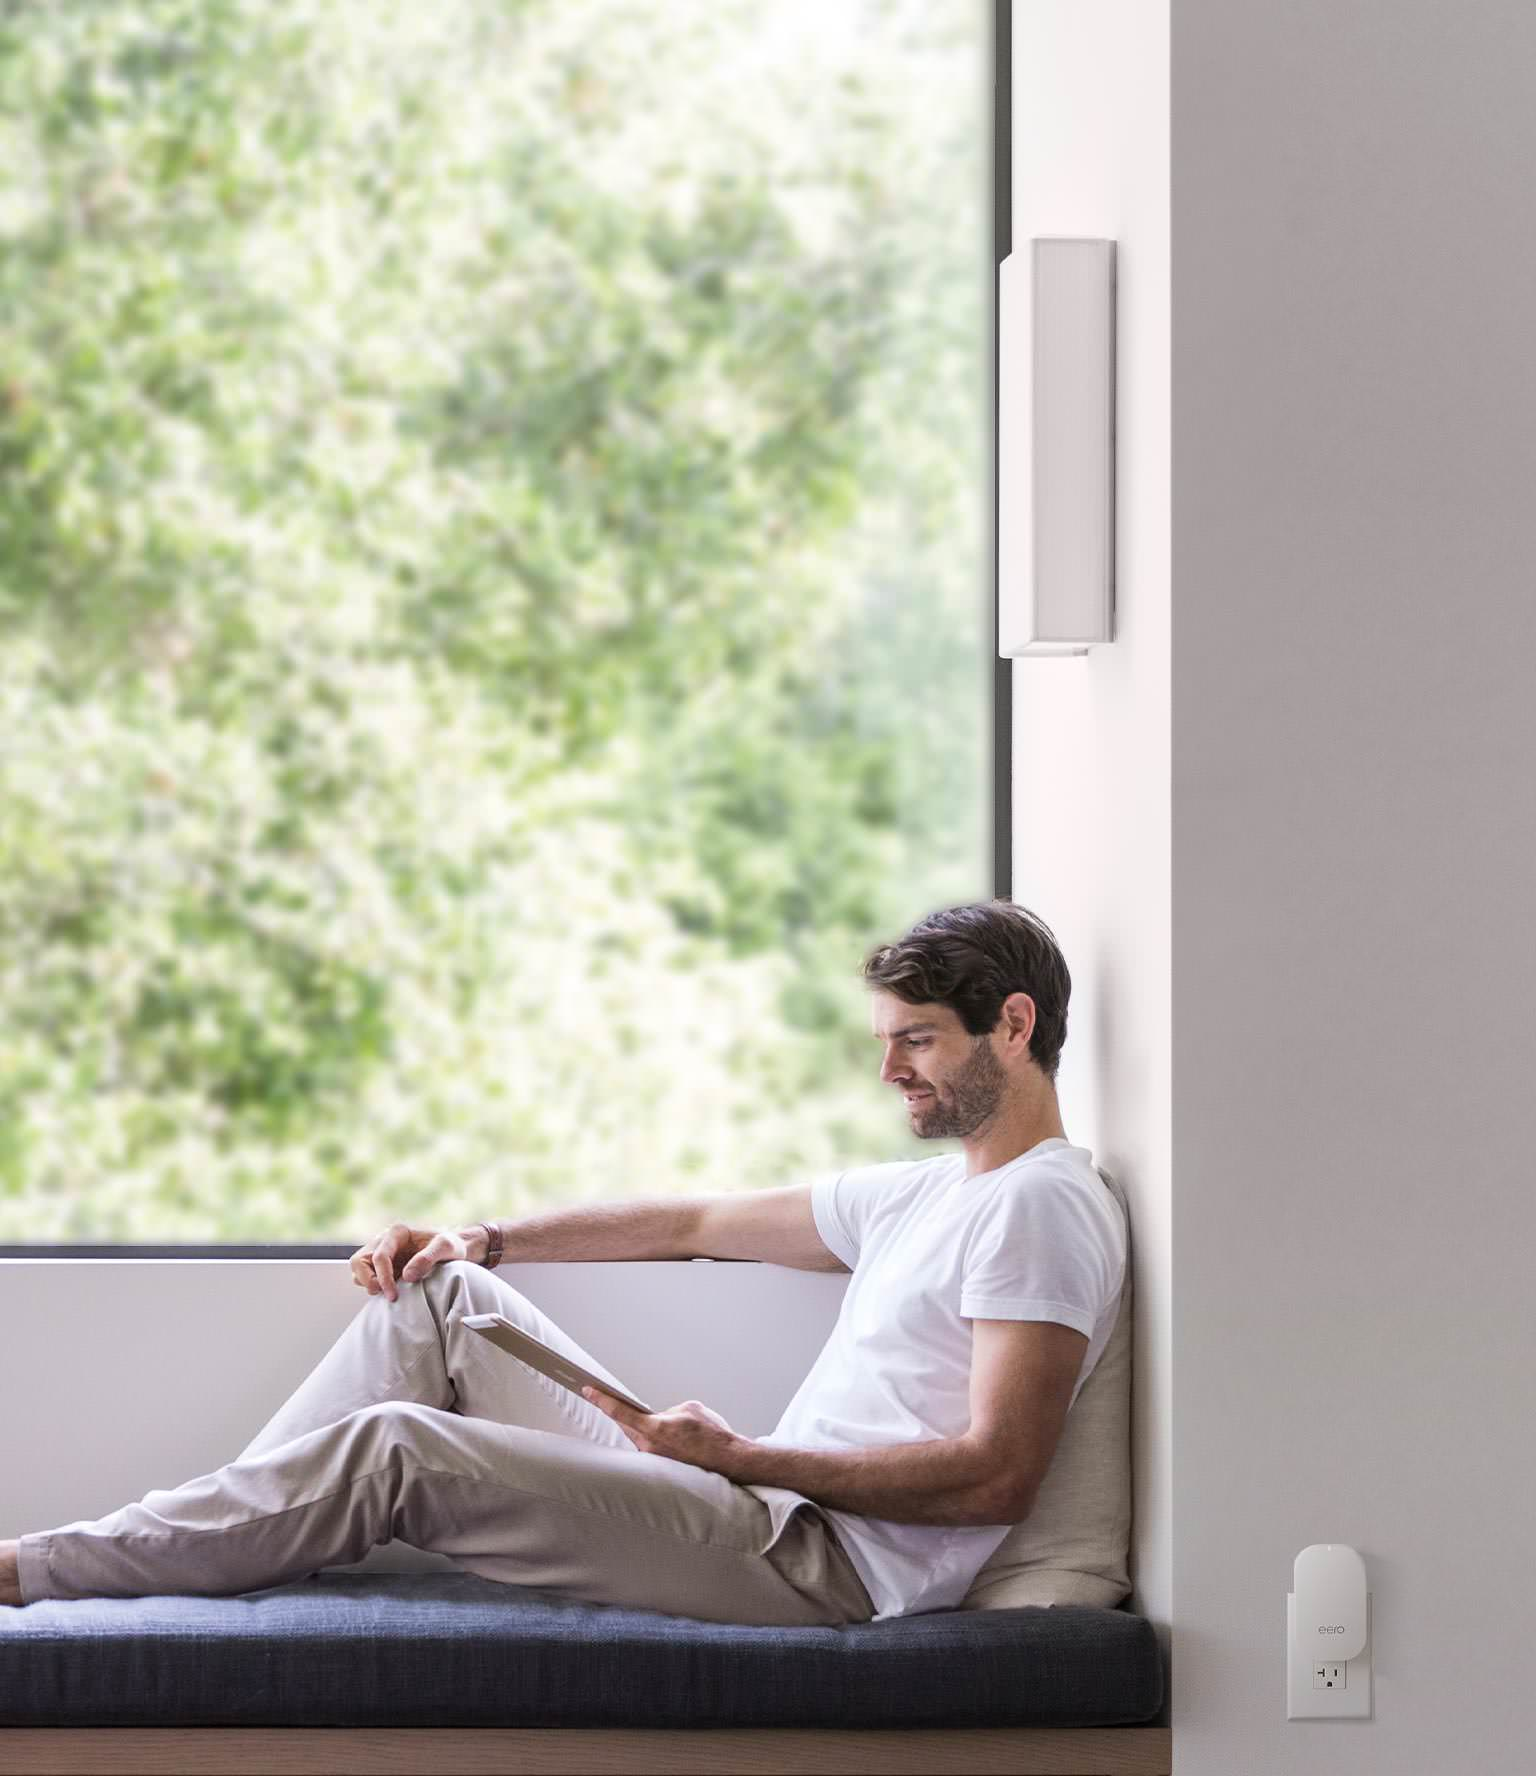 Man relaxing while using an iPad. An eero Beacon is nearby on the wall.